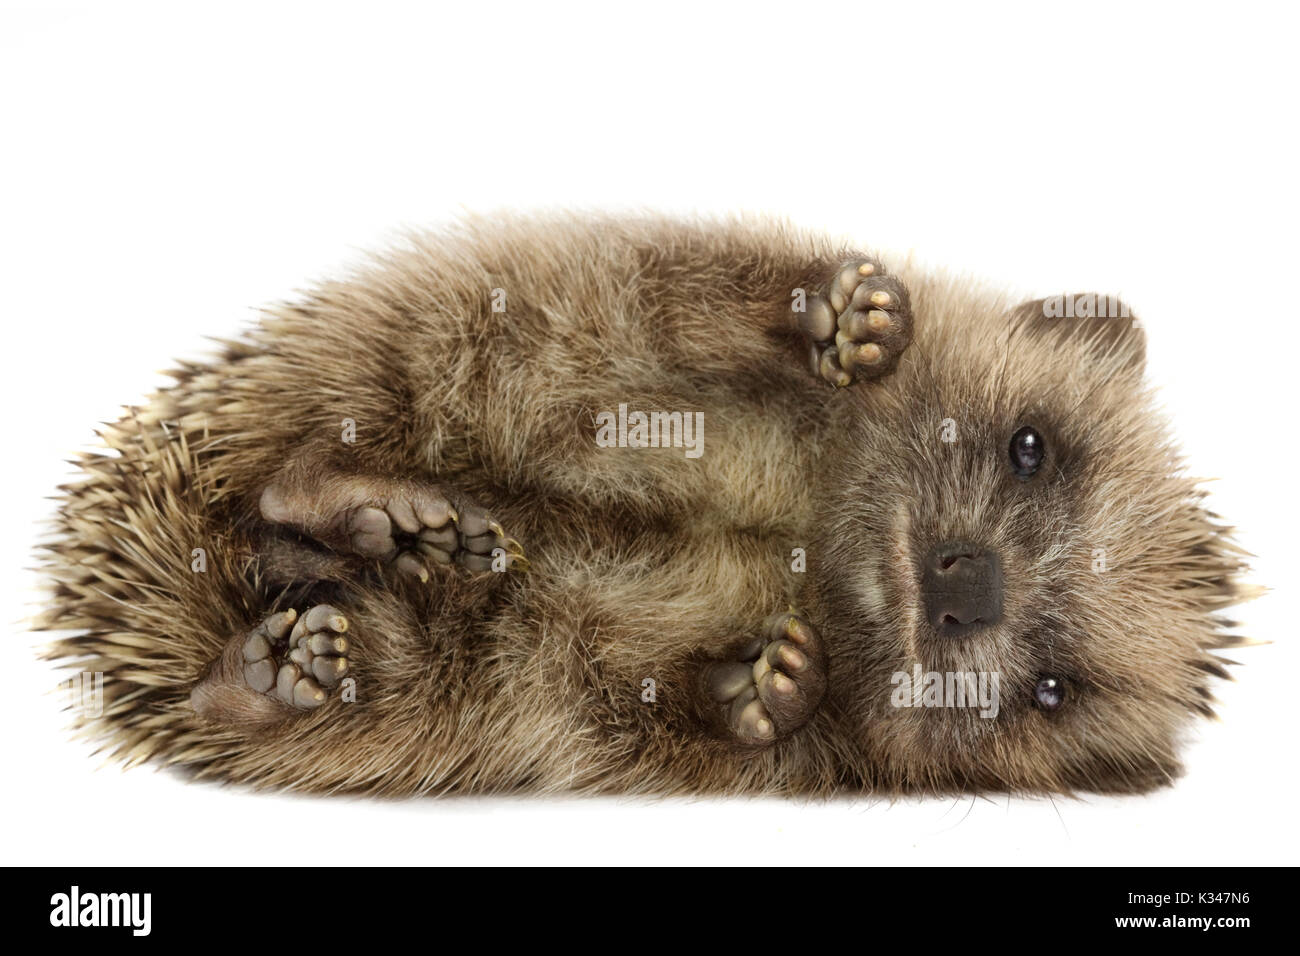 Small hedgehog (Erinaceus europaeus), curled up on its side, on a white background - Stock Image